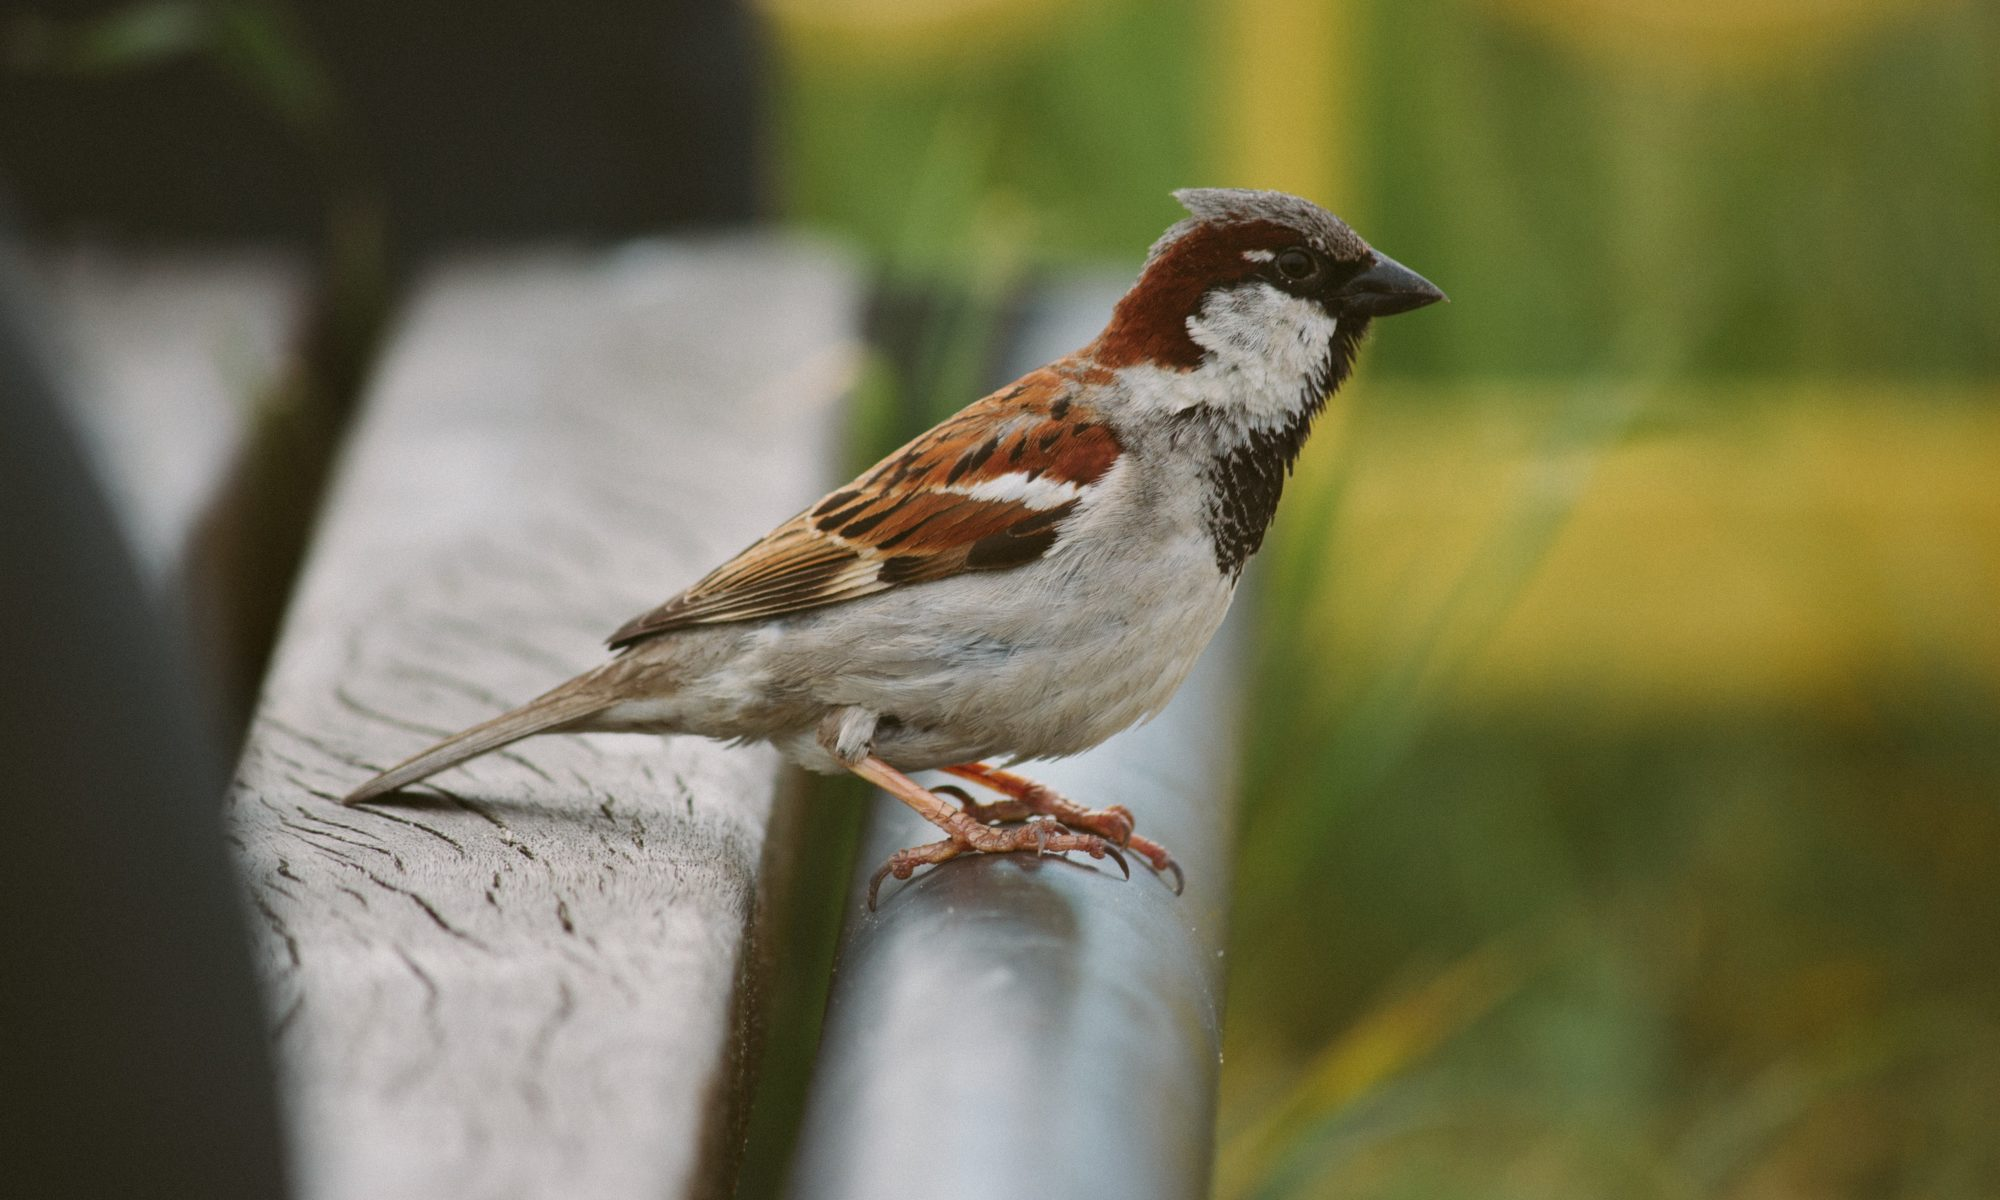 portrait of a sparrow representing the sparrow aspect of this st. paul boudoir photorapher